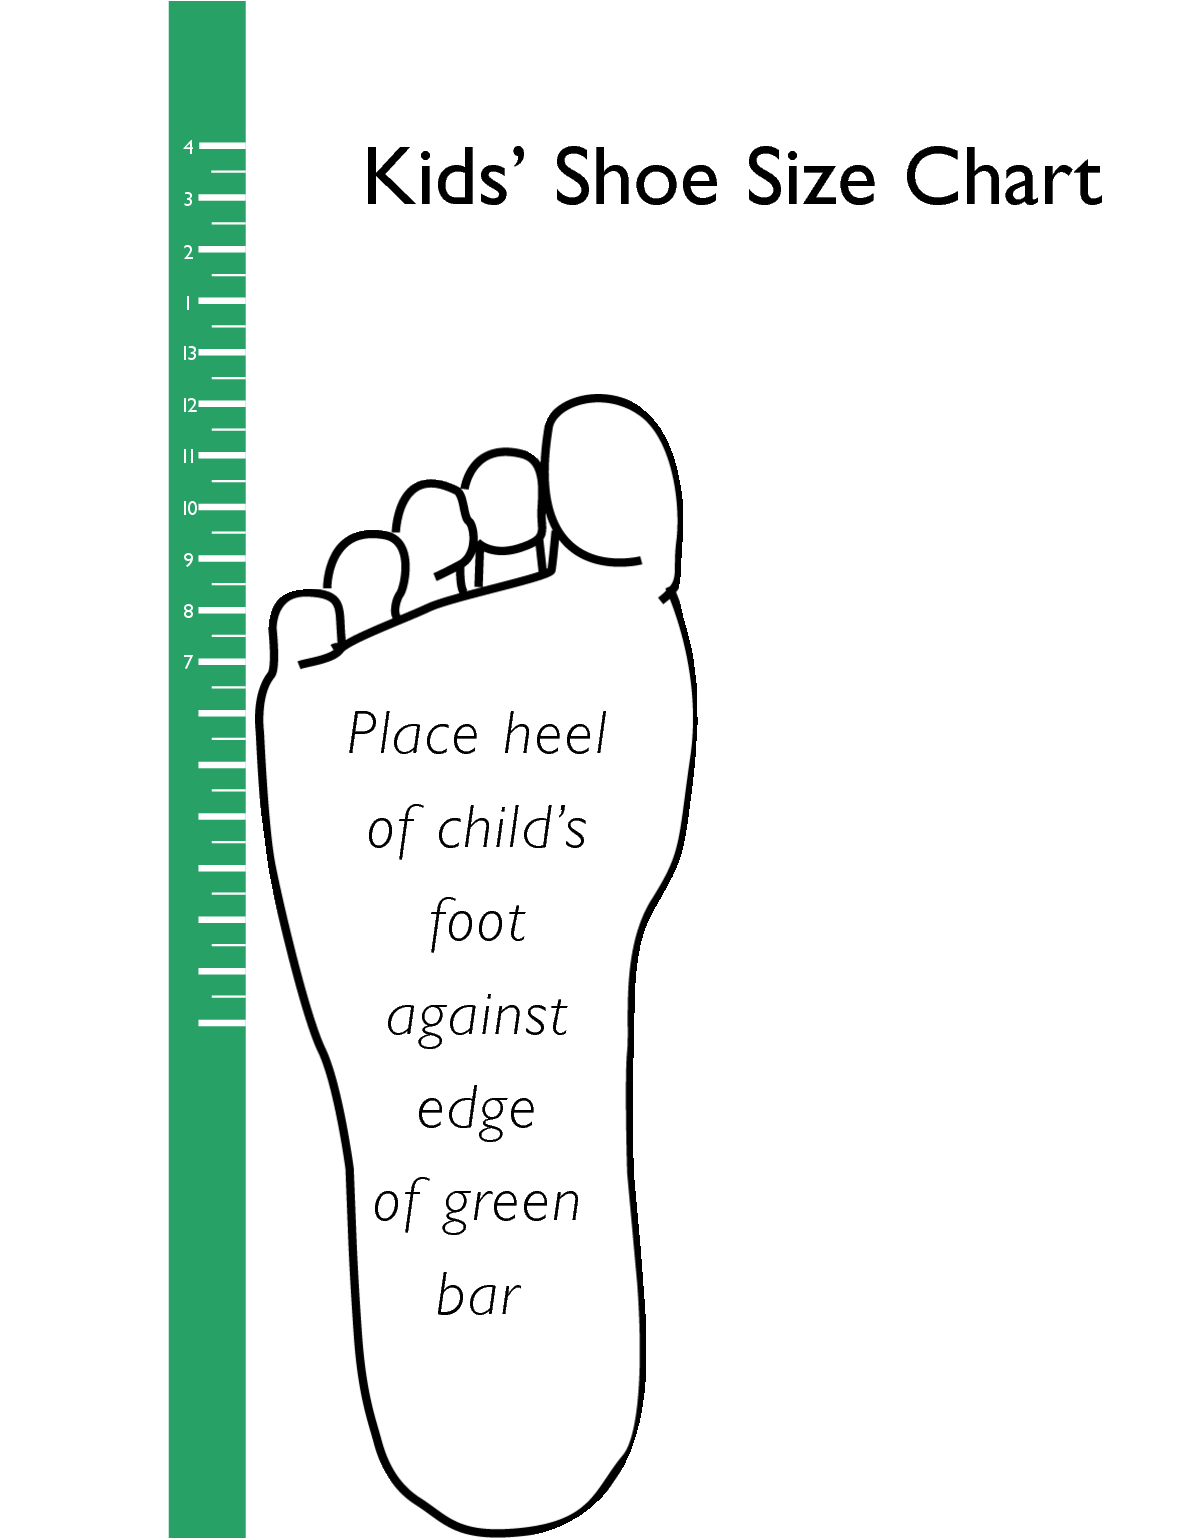 Kids' Sock Size Chart Kids' feet grow fast! Make sure your kids are wearing the right sock size Kids' Socks are usually labeled with either shoe size, a alpha size (S-M-L) or a specific kids' sock size (number between 0 and 12). See size chart below to determine kids' sock size (both alpha size and specific sock size) from shoe size or from kid's age.